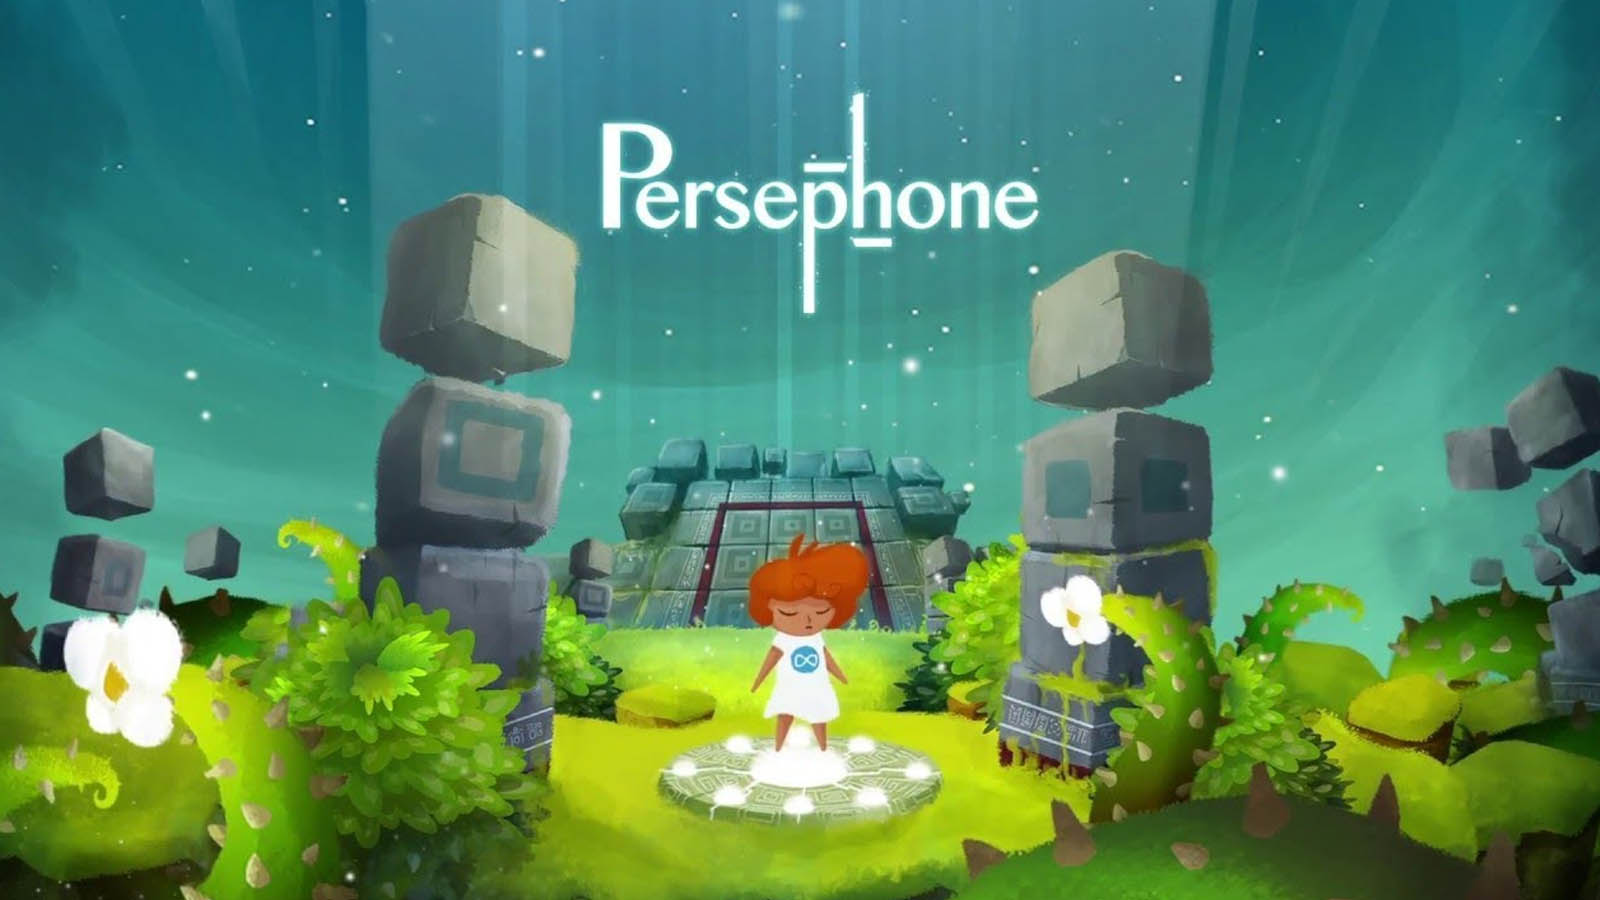 Your new Google Play Pass games include Dandara, Persephone, ALTER, and 23 more